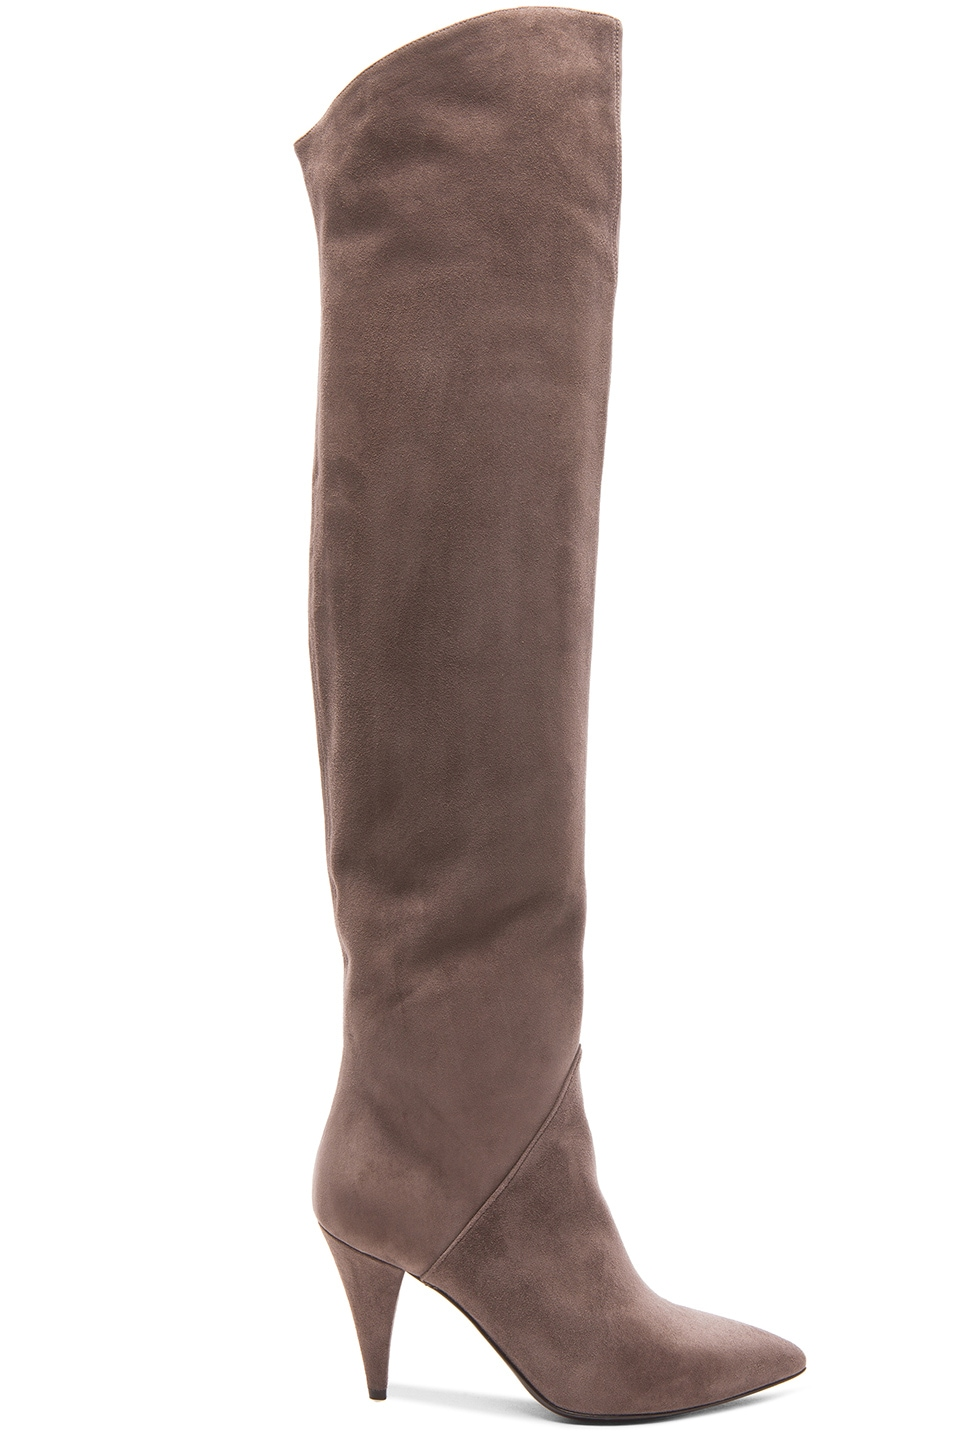 Image 1 of Saint Laurent Thigh High Cat Suede Boots in Dark Anthracite